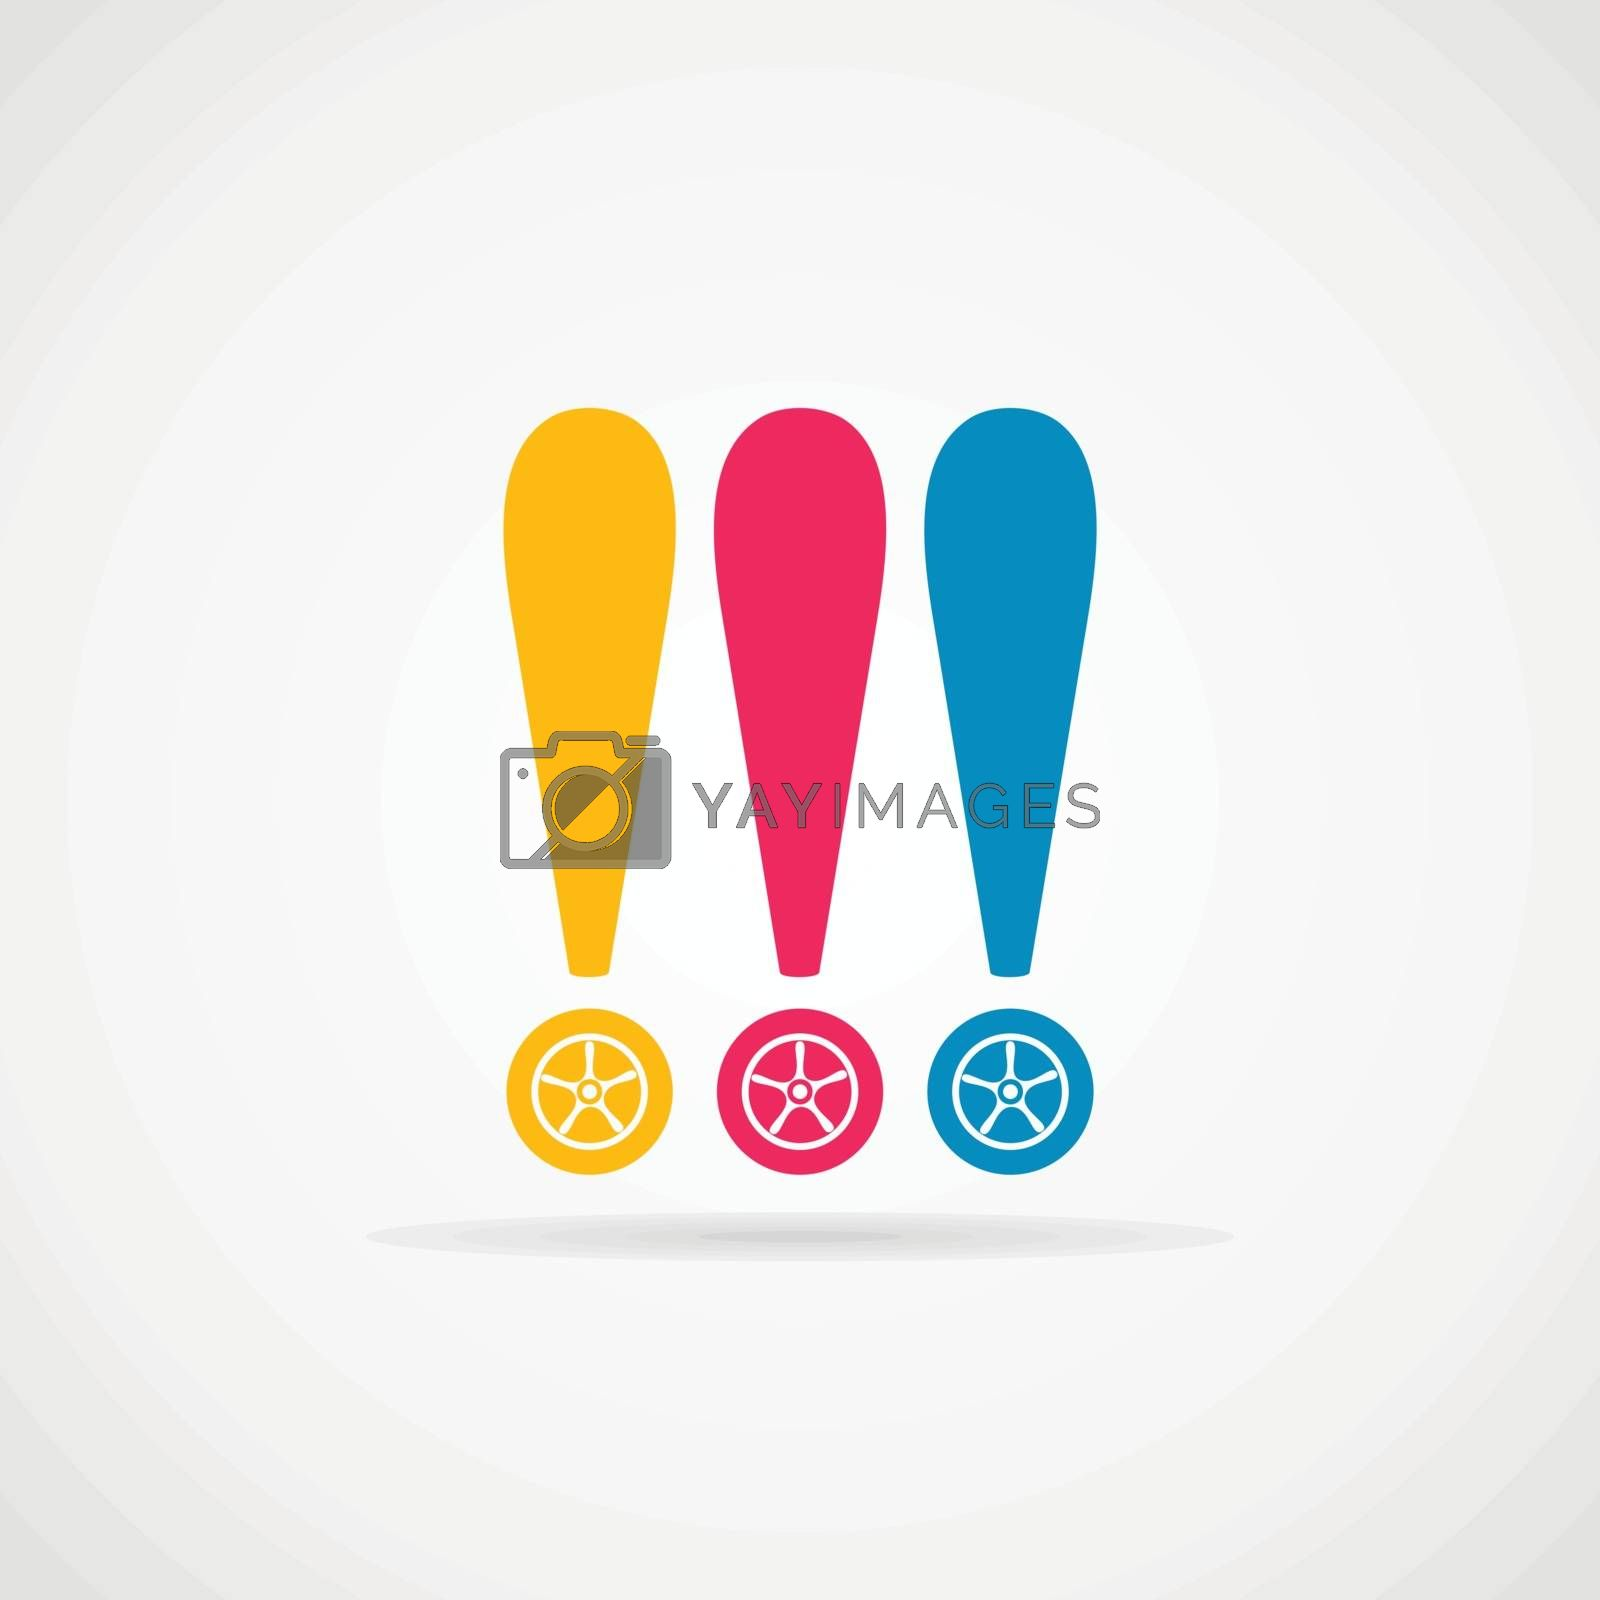 Exclamation mark the wheel of the car. Vector illustration